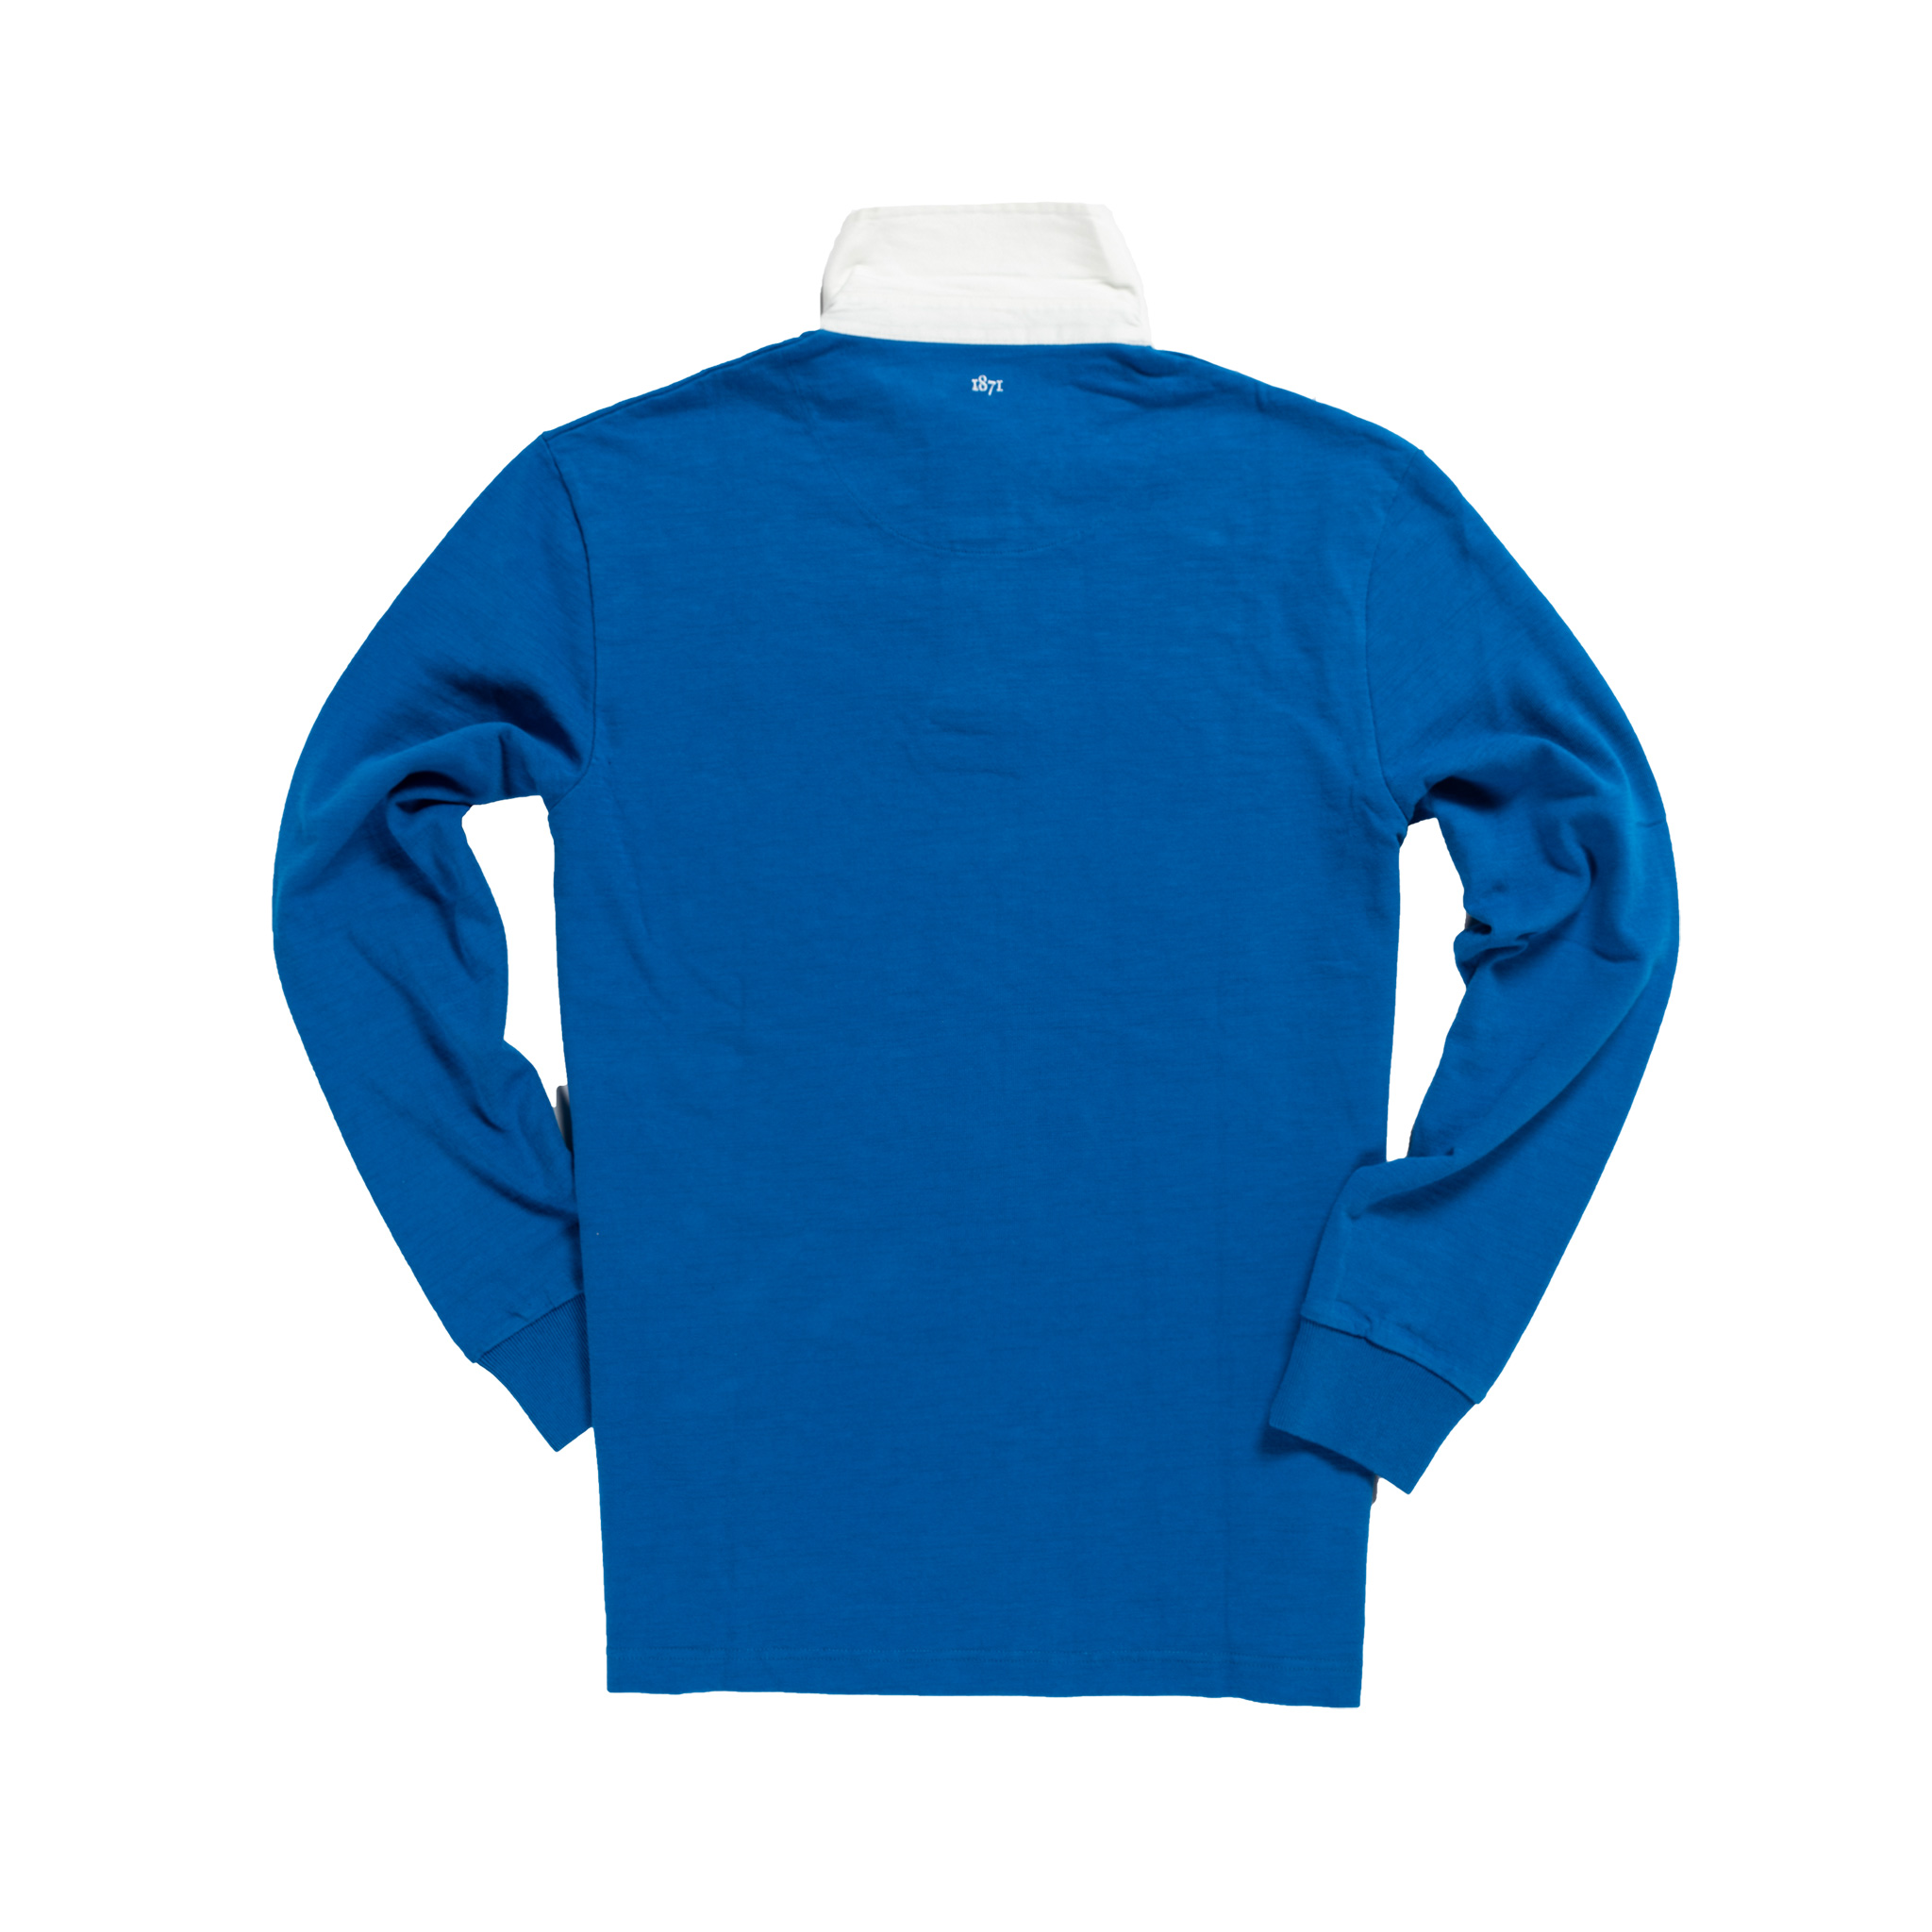 Classic Royal Blue 1871 Vintage Rugby Shirt